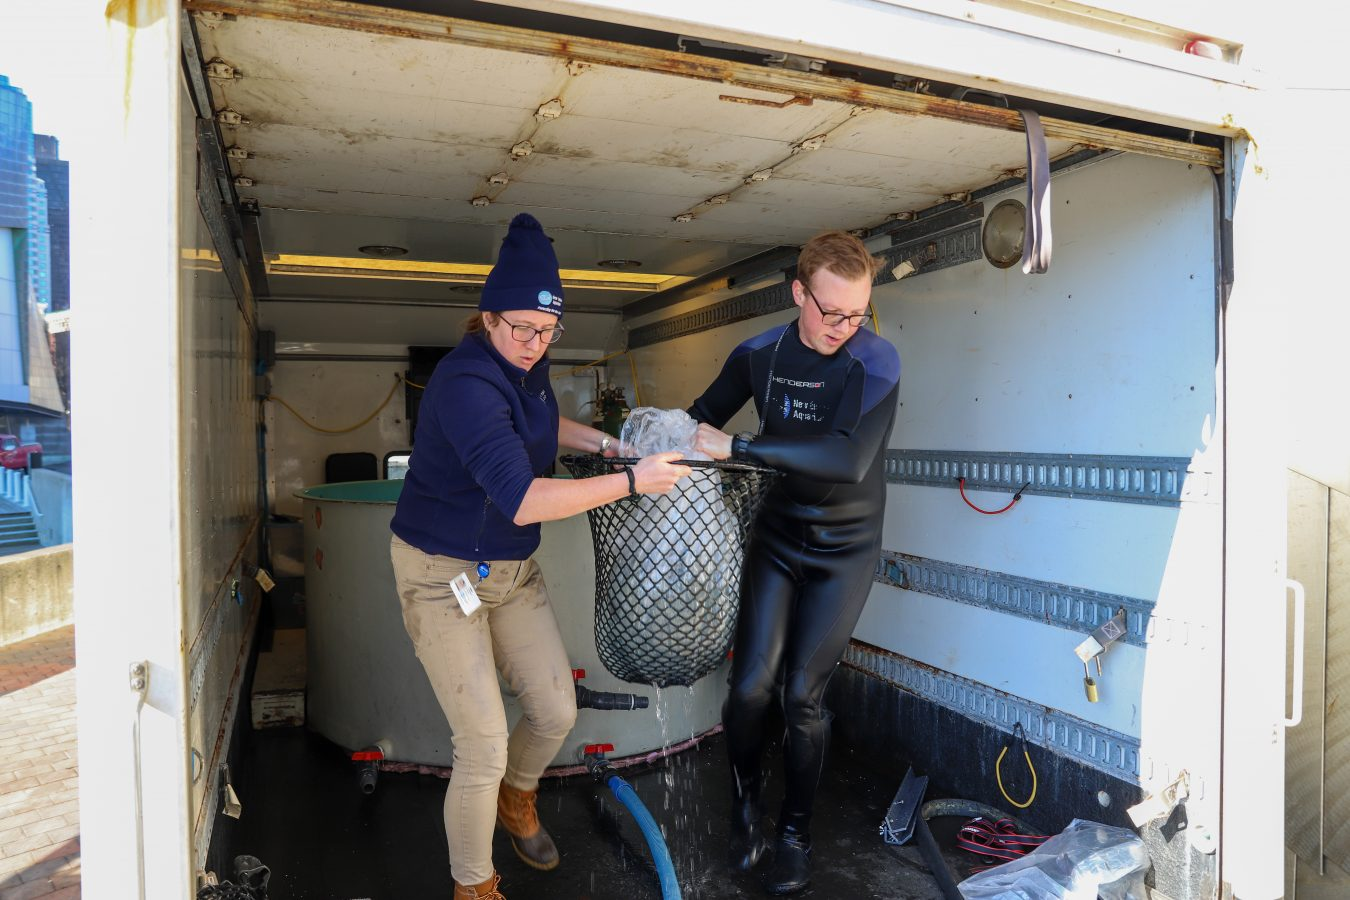 Lindsay and Mike quickly transport the fish to the portable tank.